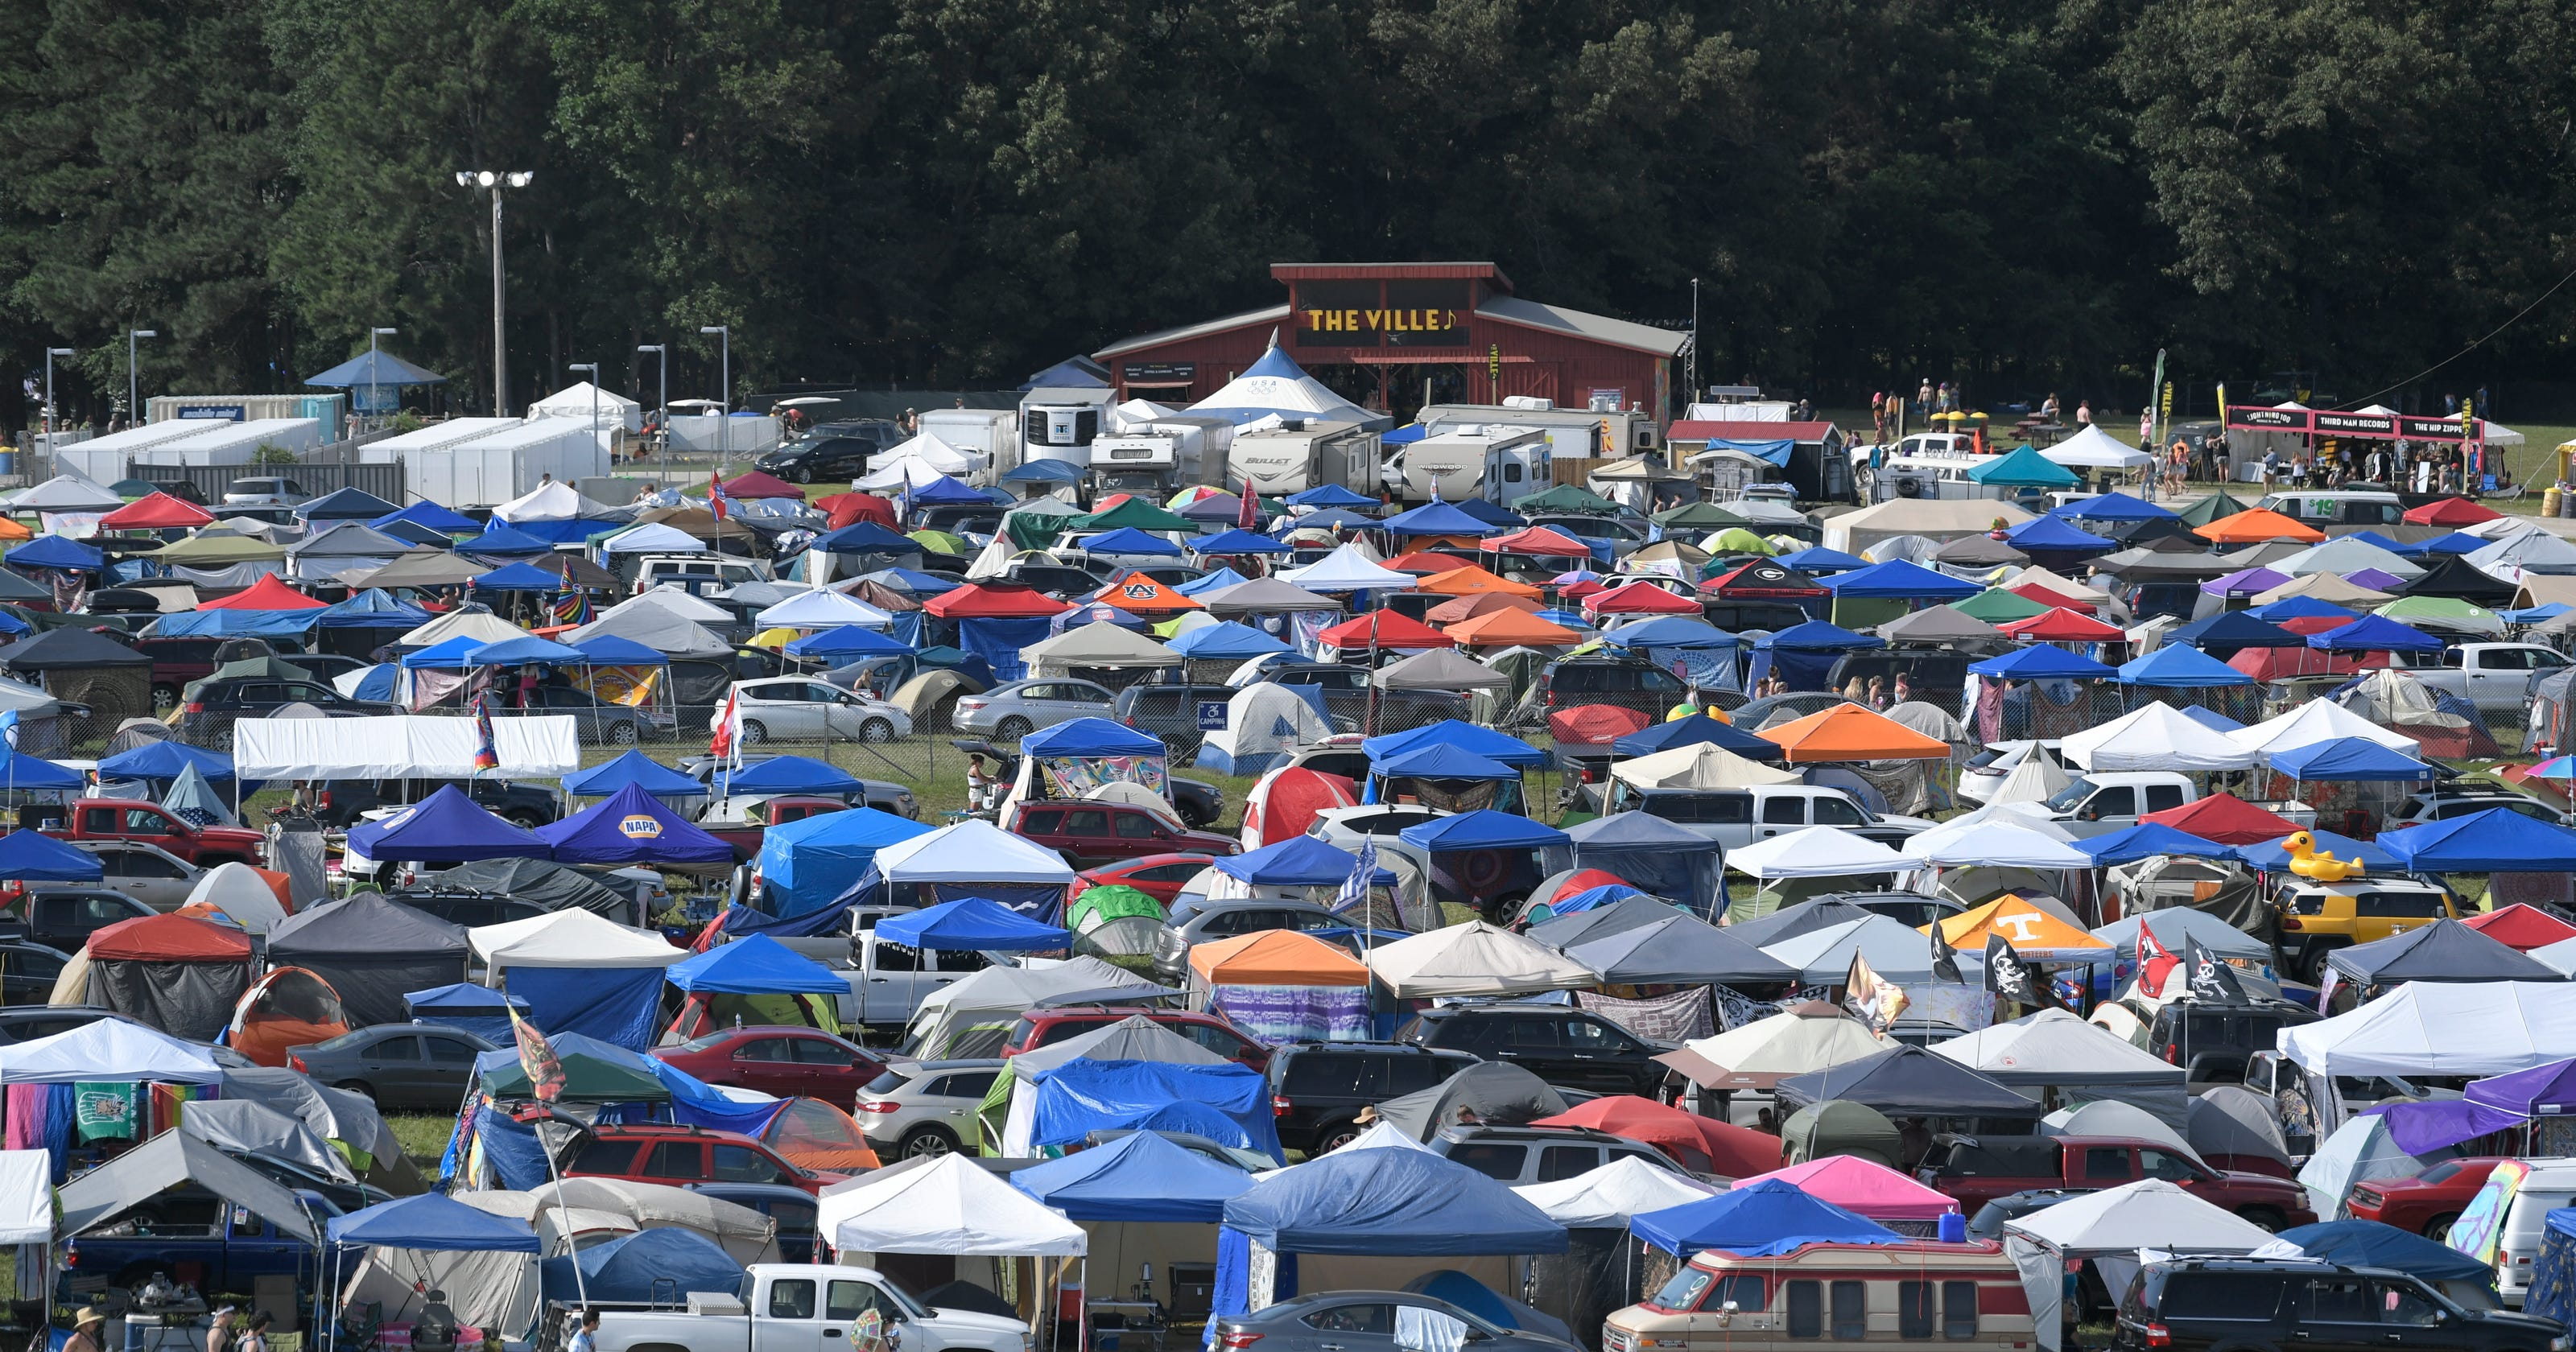 Bonnaroo death: 32-year-old found dead Friday morning at